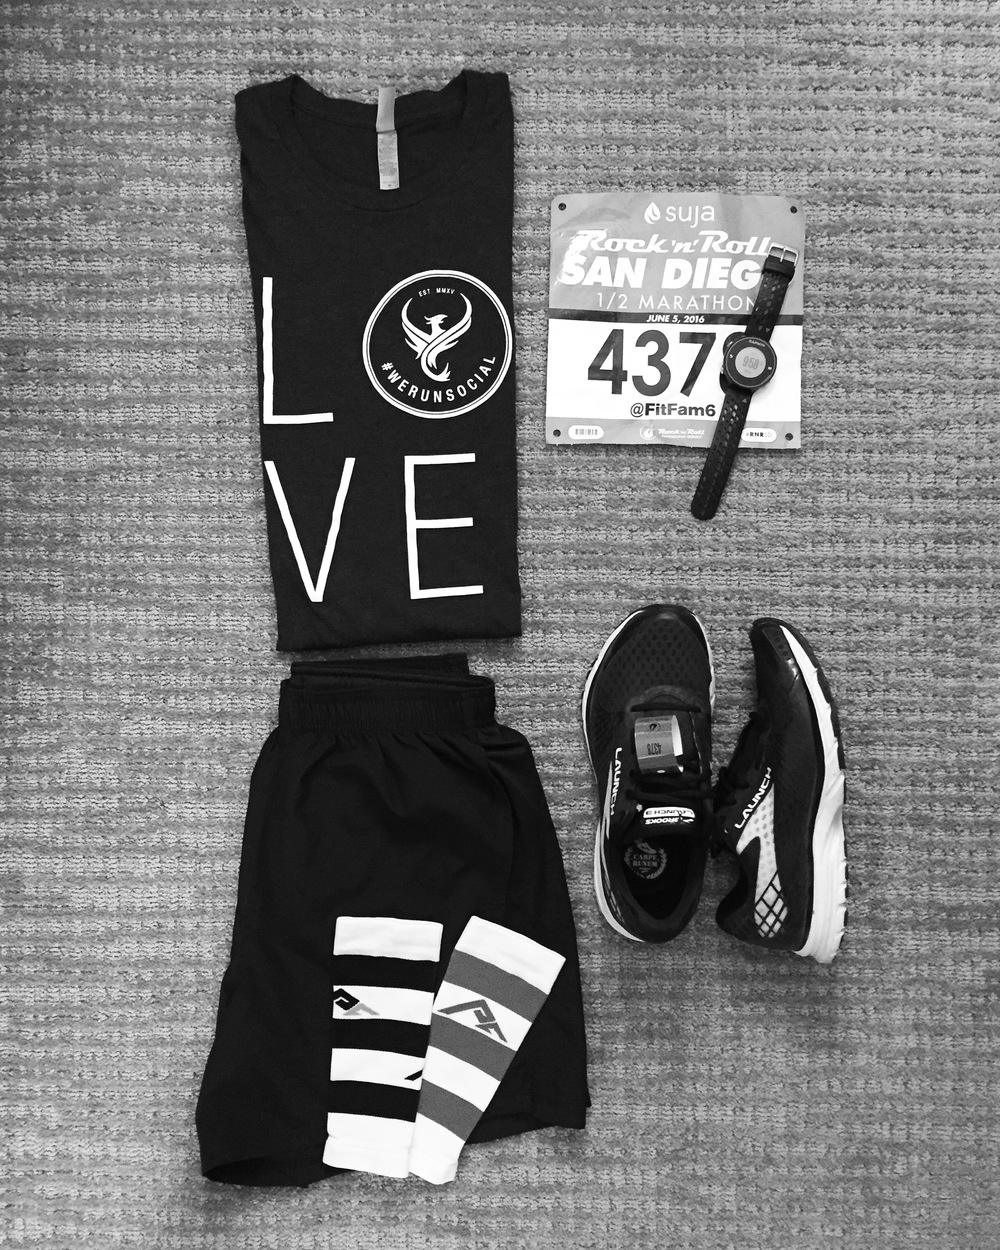 #Flatrunner ready to race.